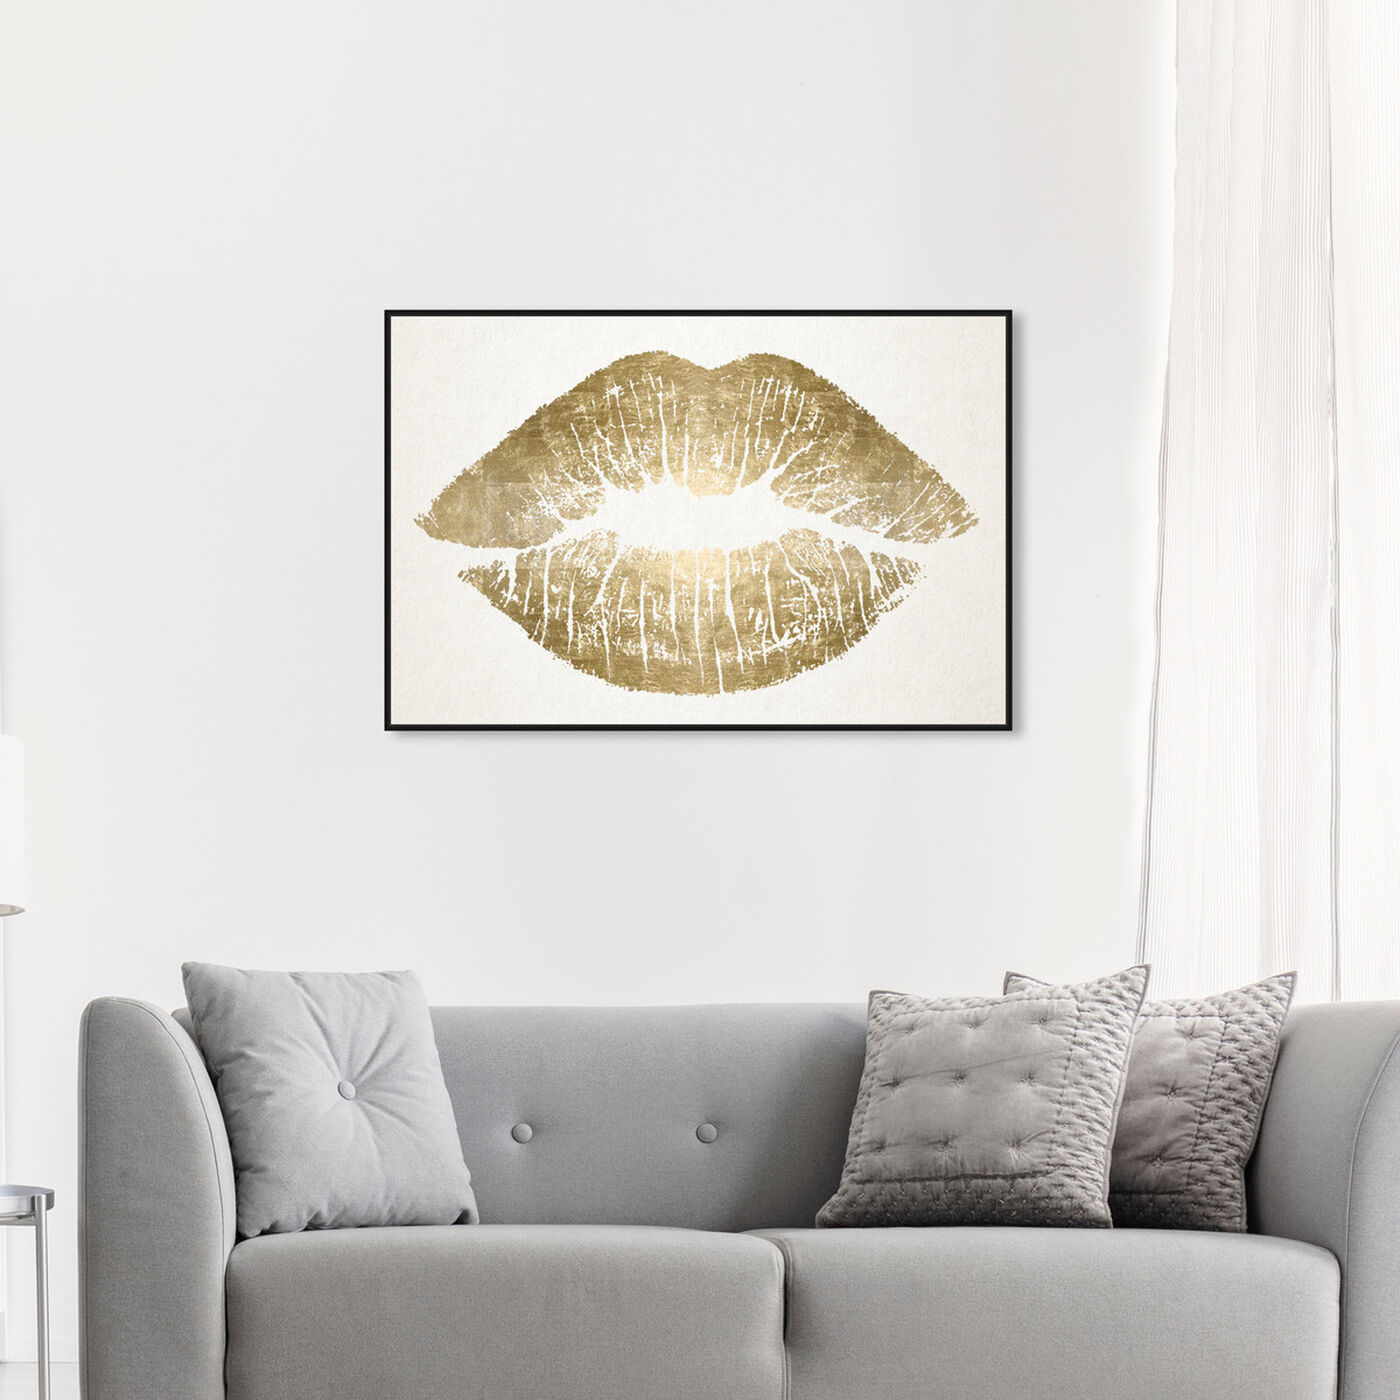 Hanging view of Solid Kiss Ideal featuring fashion and glam and lips art.